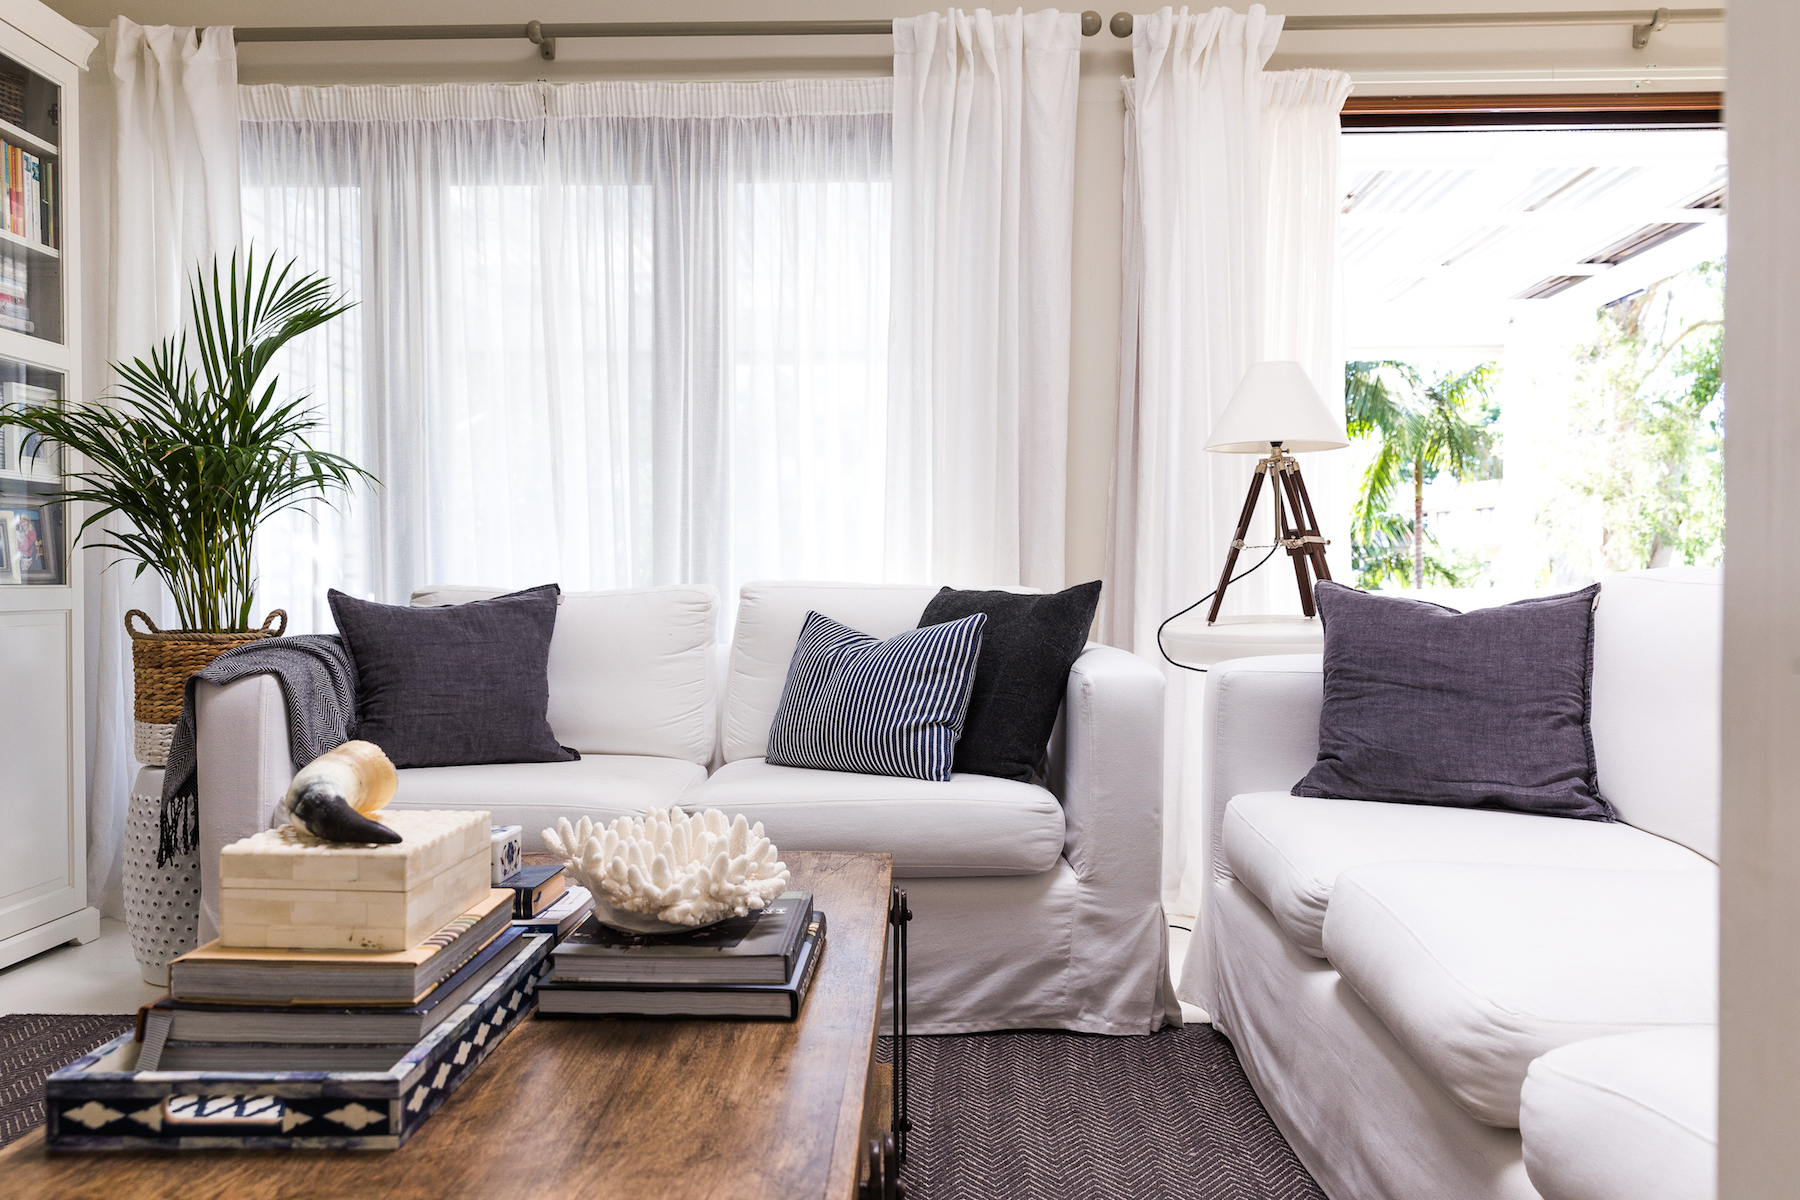 The 13 Best Spots To Buy Affordable Home Decor Online